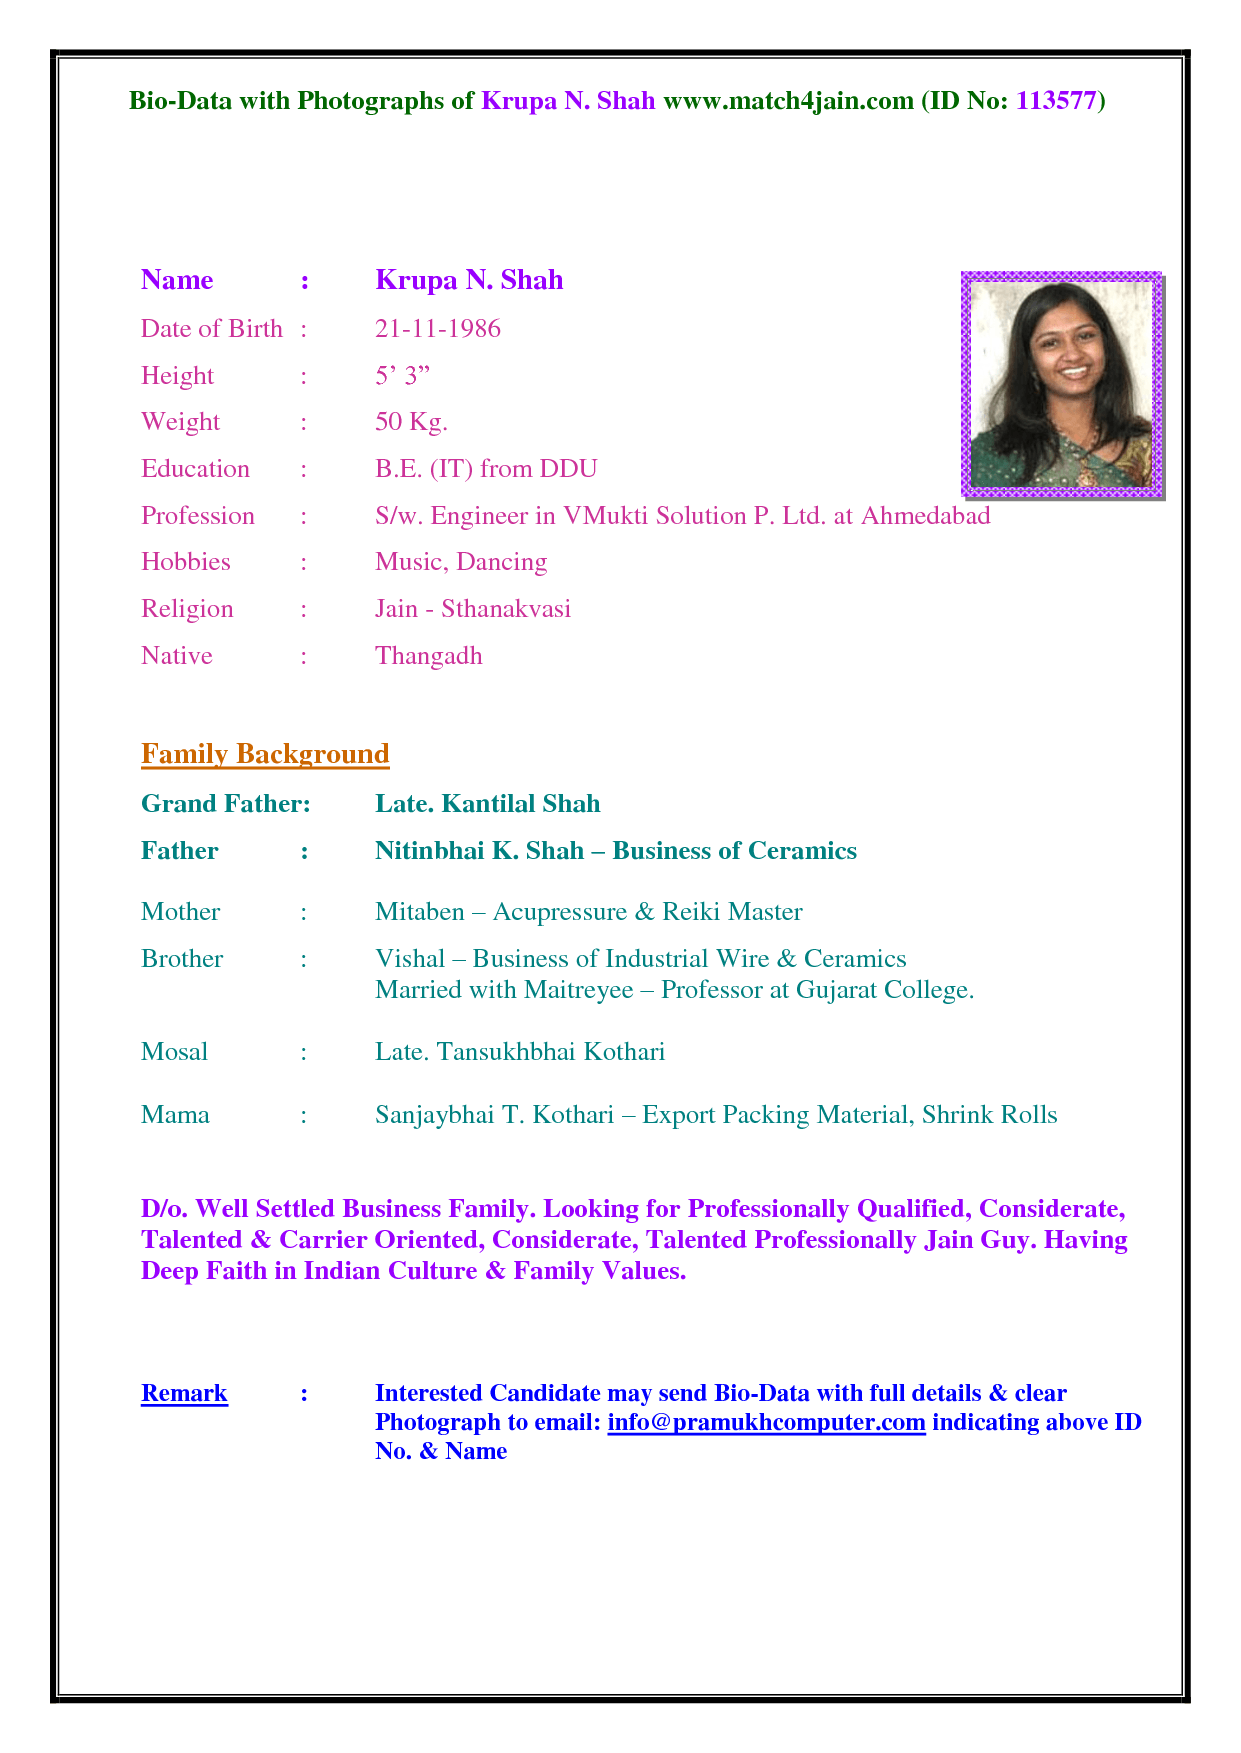 Cv Format Doc For Marriage Biodata Format Scribd Check The Below Link For  More Formats Httpaletterformat  Performa Of Resume